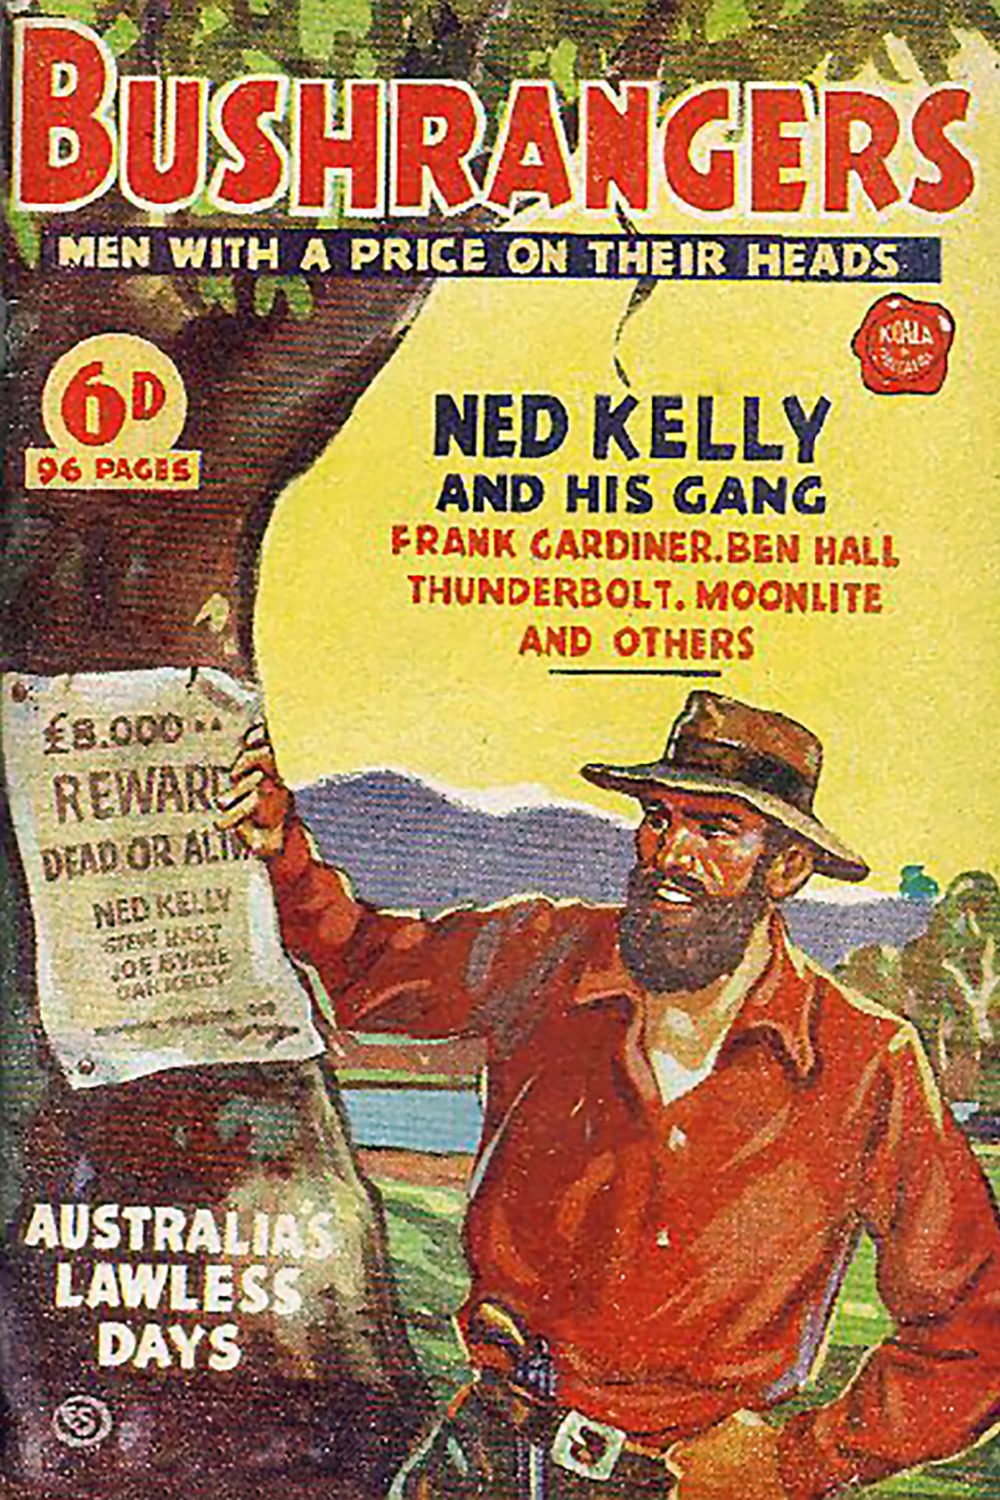 Ned Kelly And His Gang by W.H. Fitchett